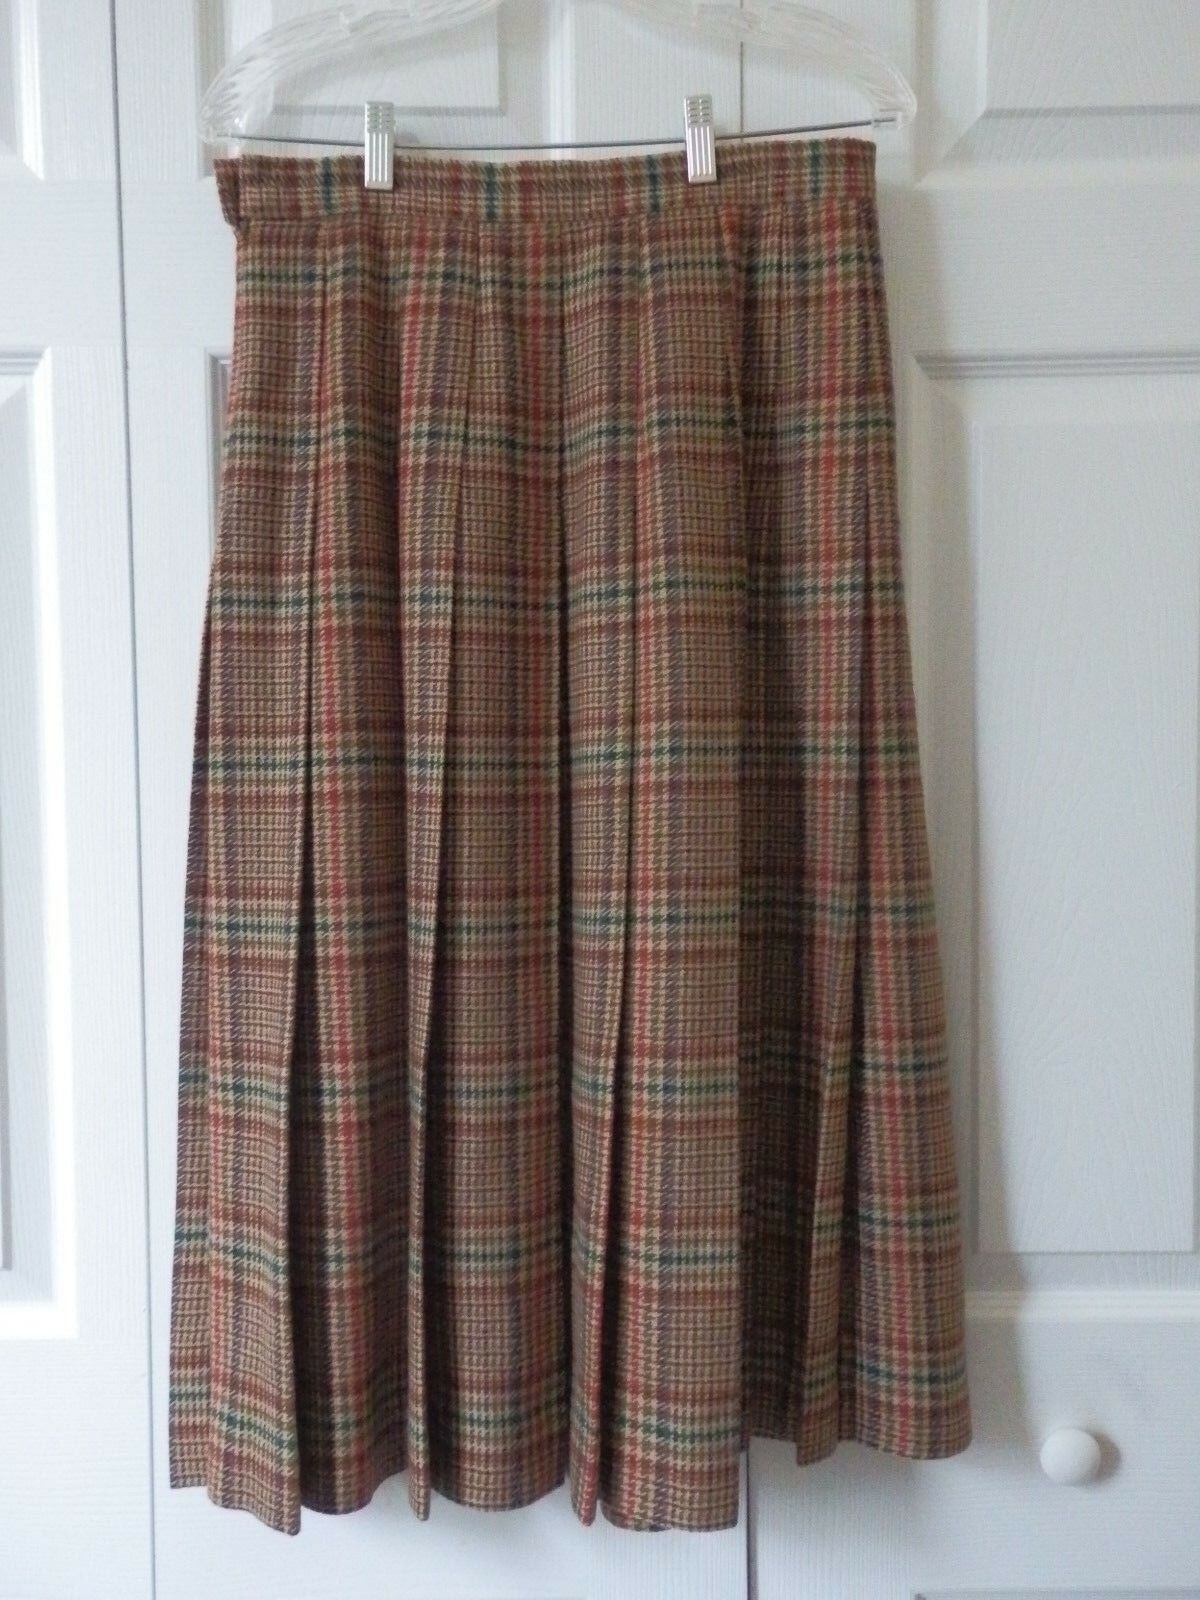 LL Bean Beige Red Brown Green Plaid 100% Pure Wool Pleated Lined Skirt 12 Petite